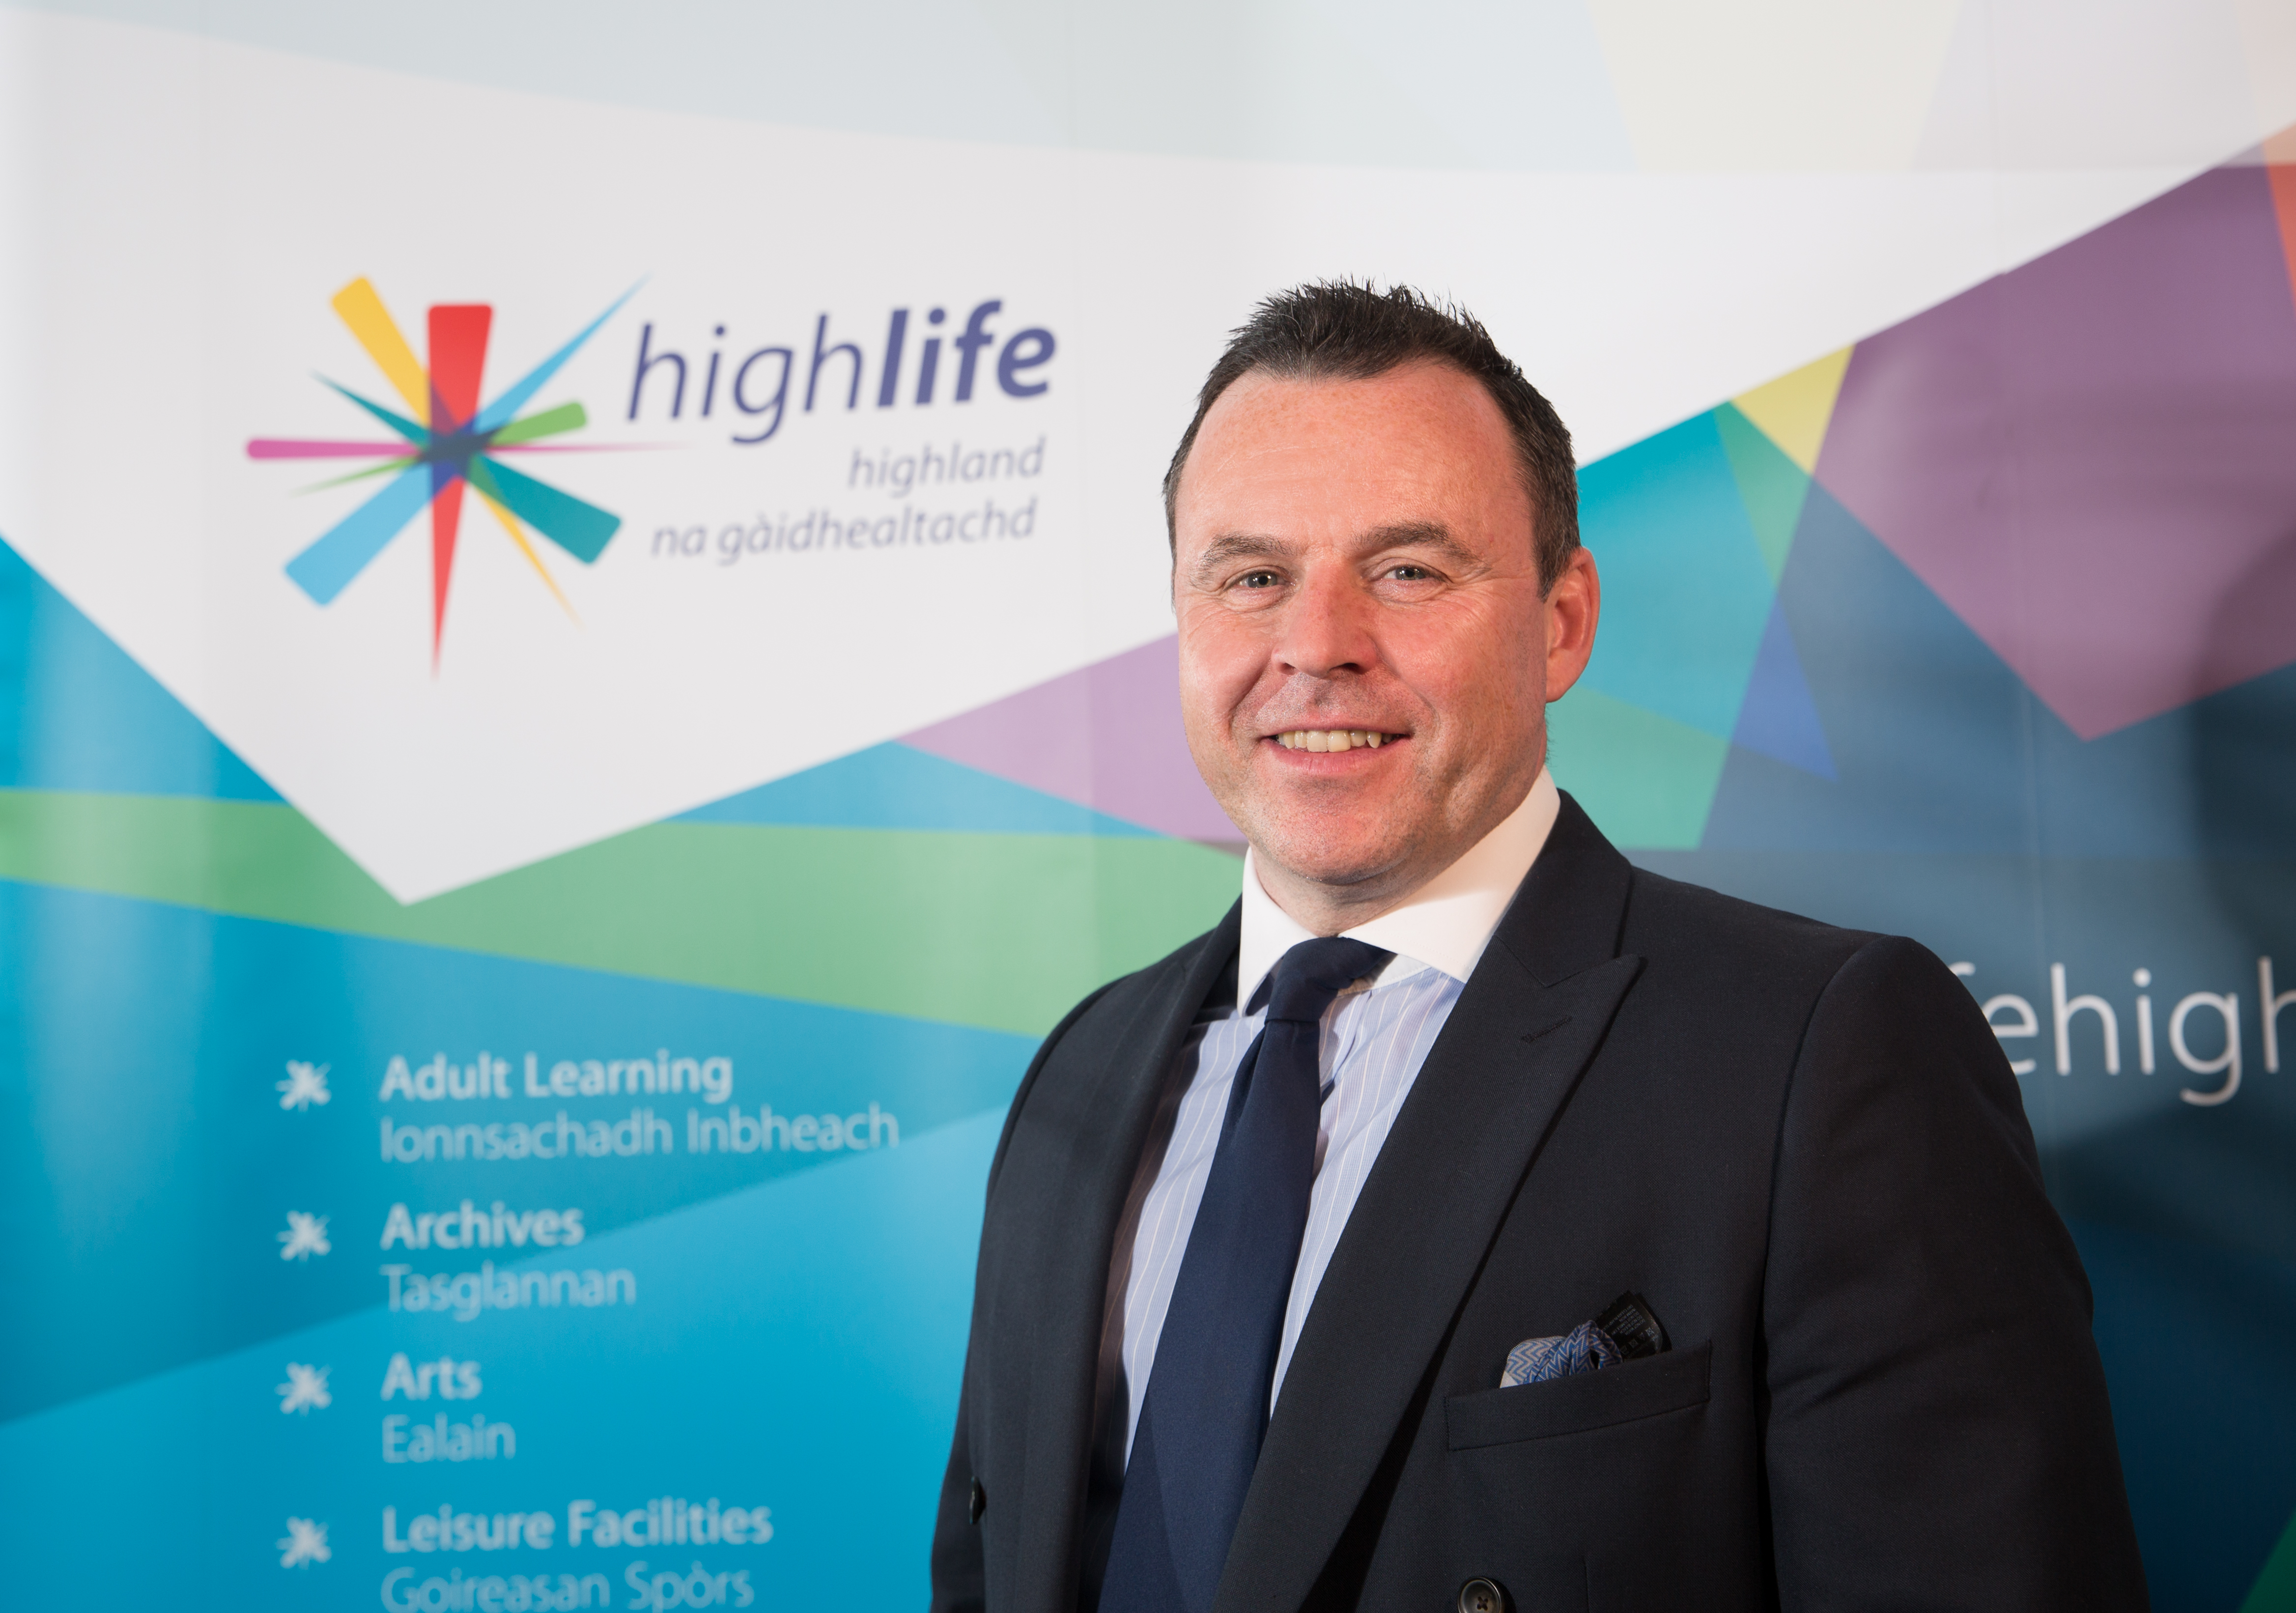 Steve Walsh, has been appointed as High Life Highland's new chief executive